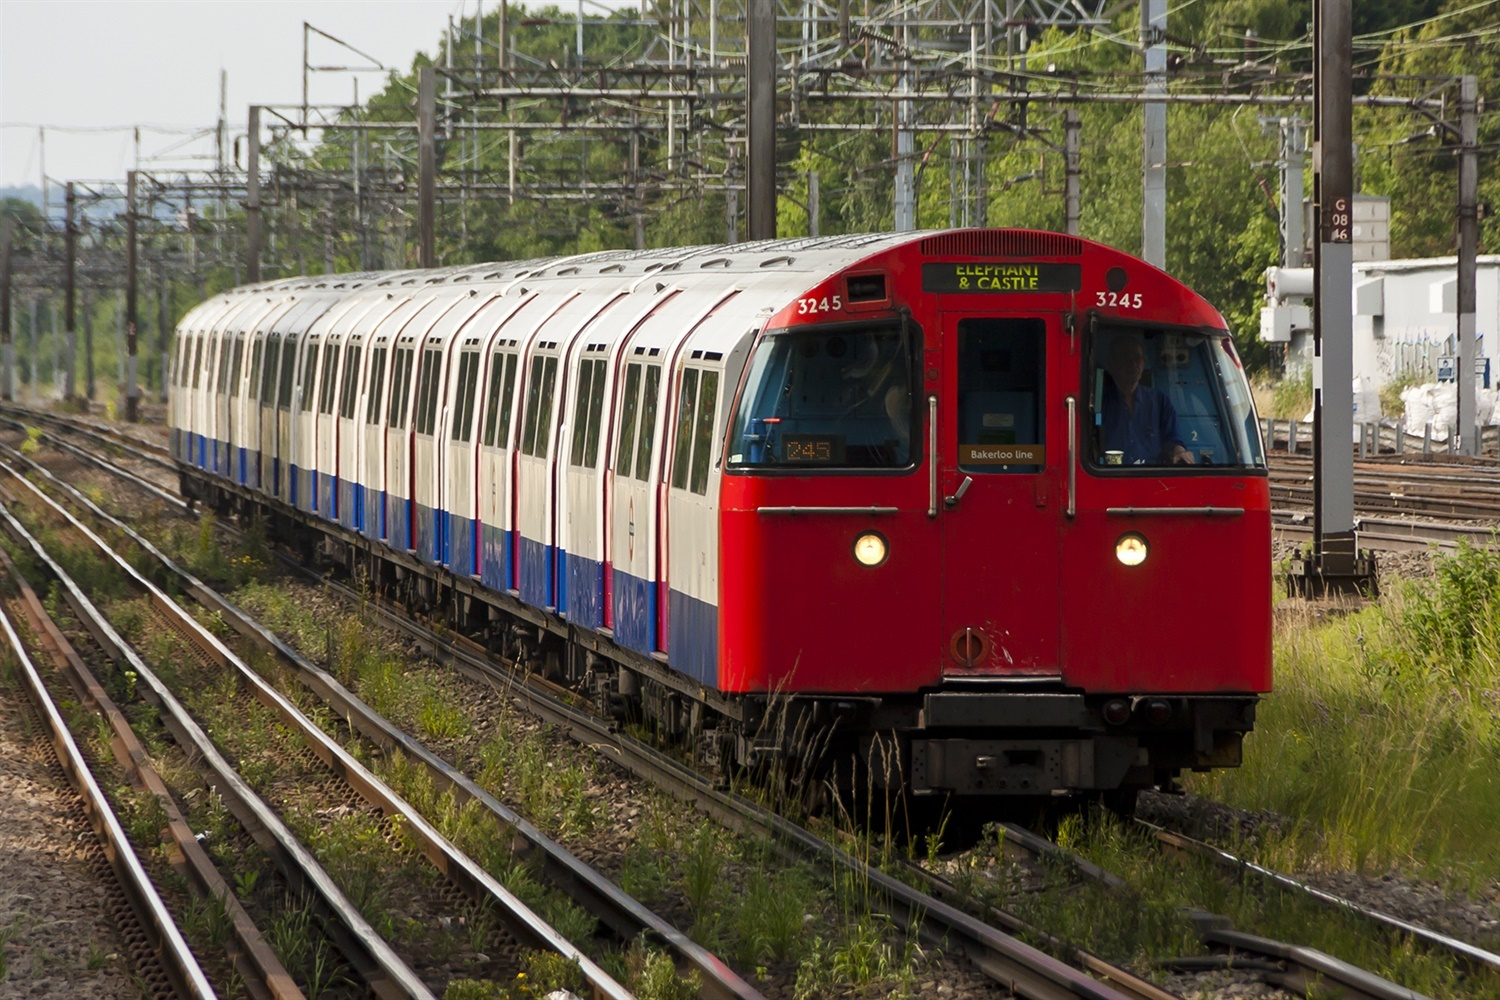 Public back latest proposed plans for Bakerloo Line extension